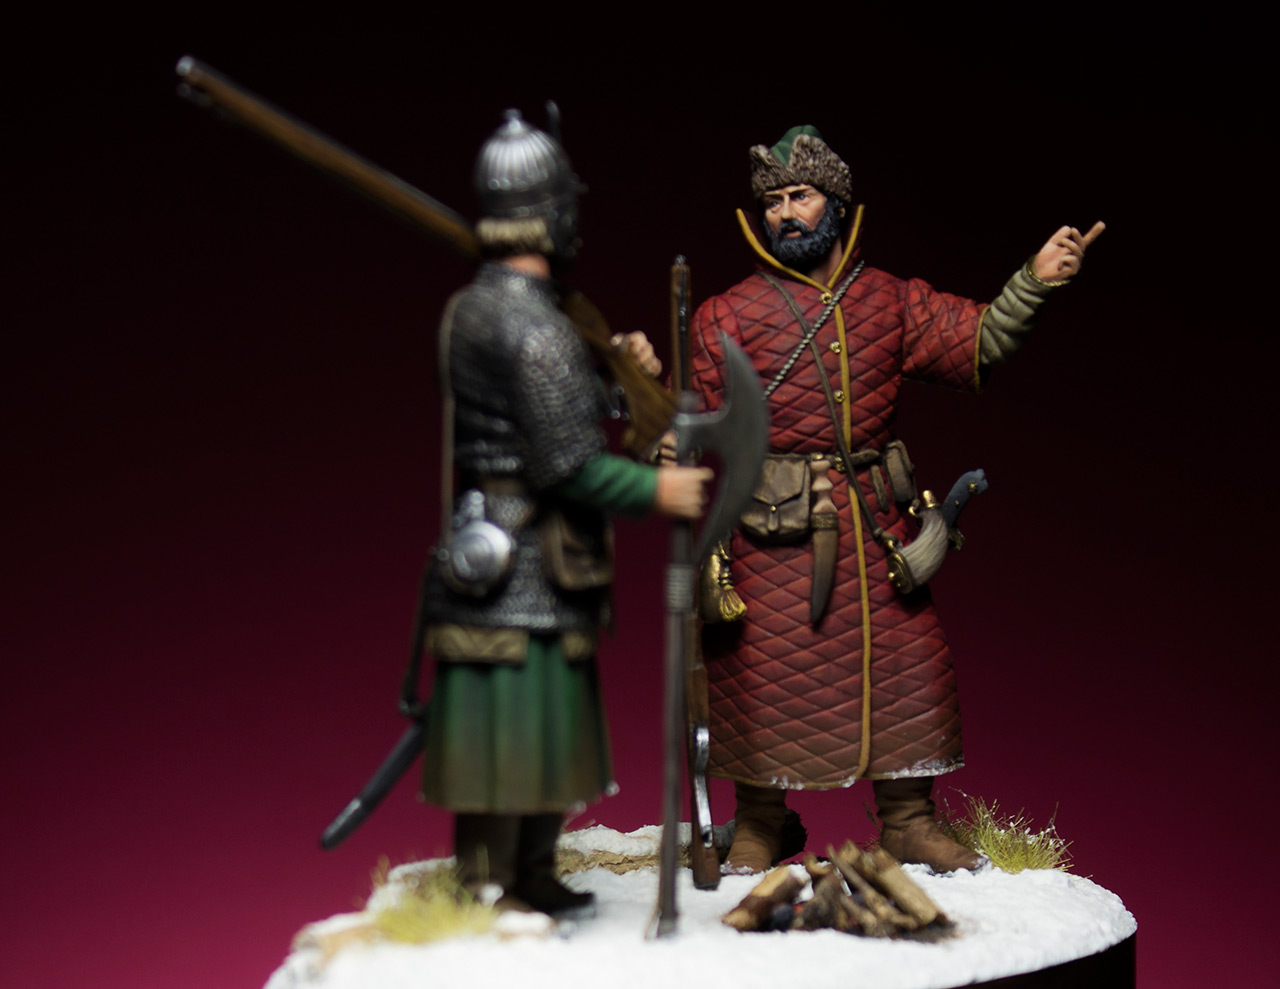 Figures: Russian musketeers, photo #5